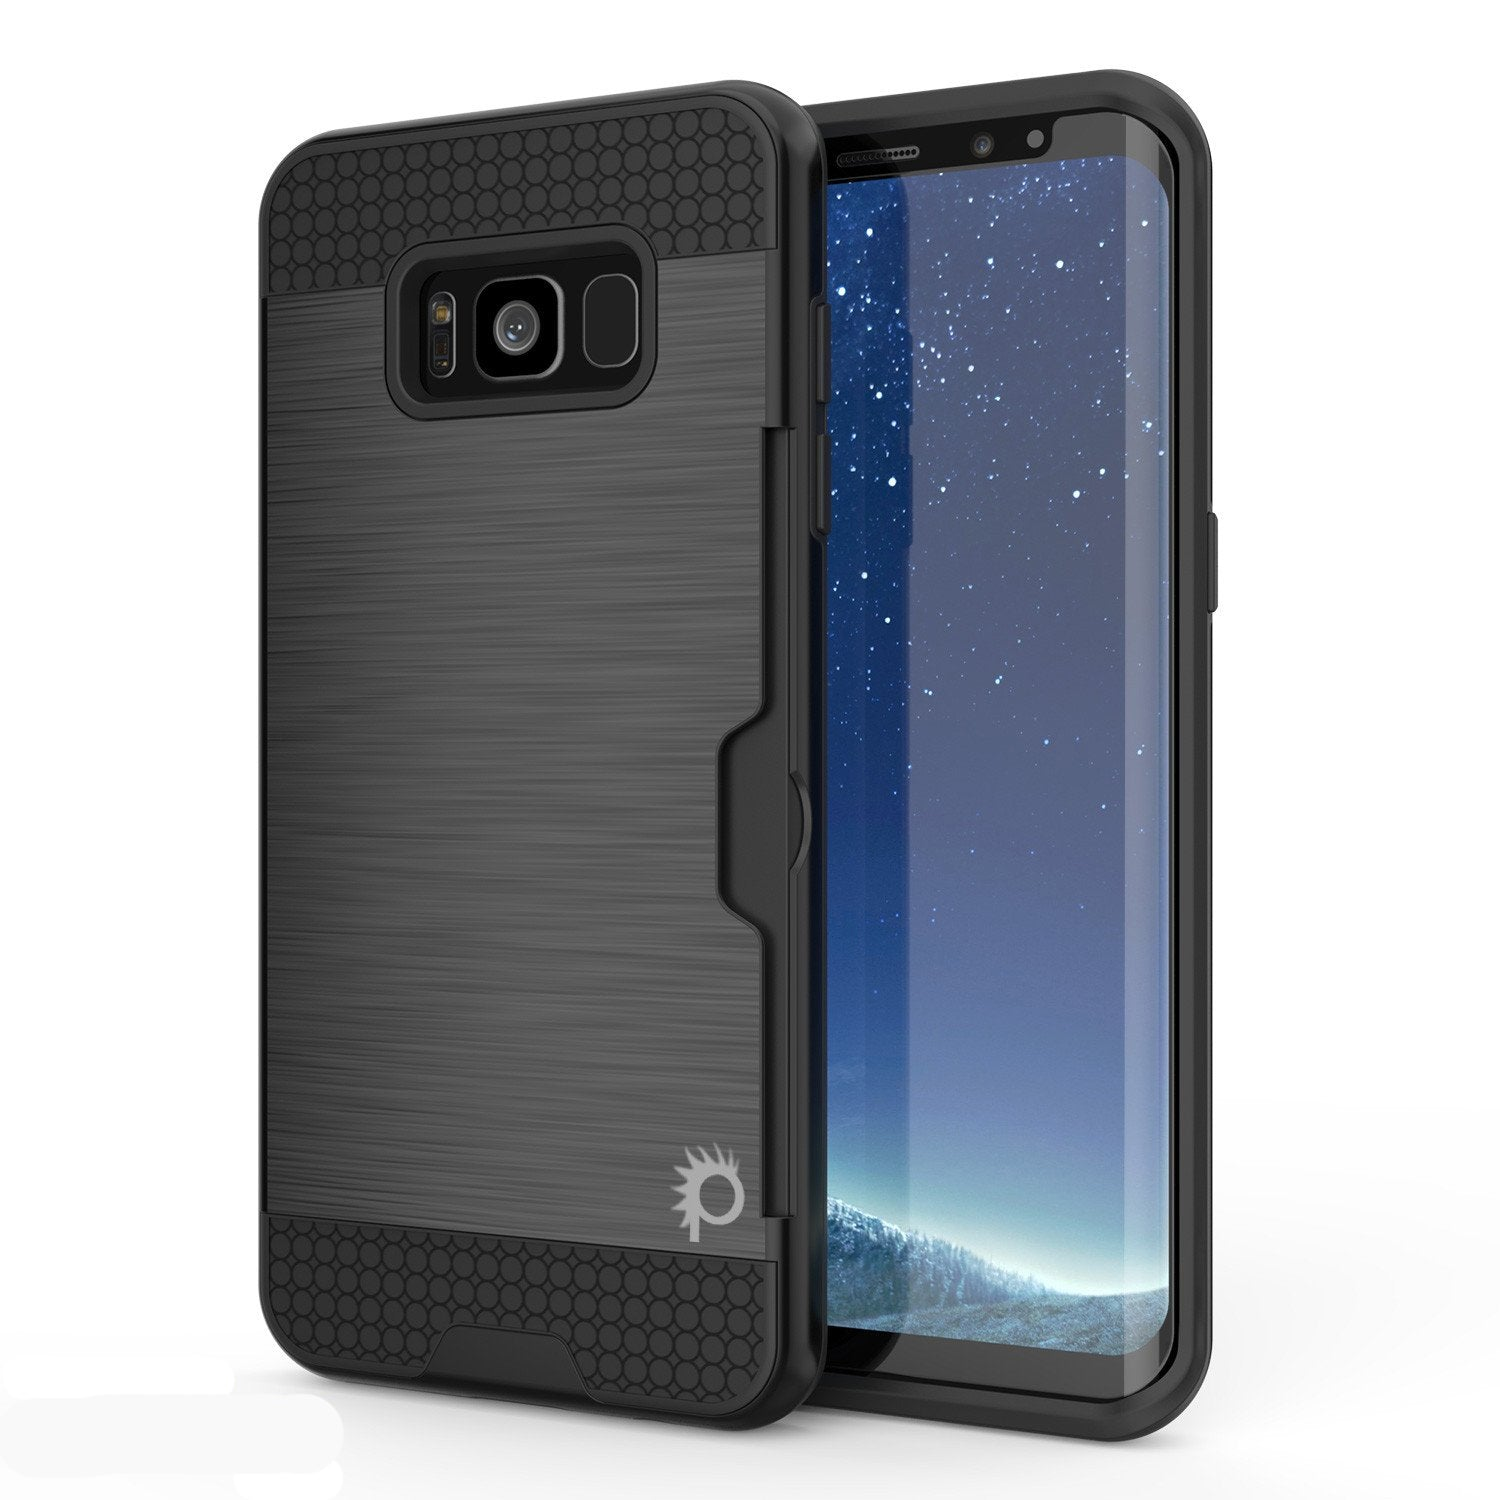 Galaxy S8 Plus Punkcase SLOT Series Dual-Layer Armor Cover, Black